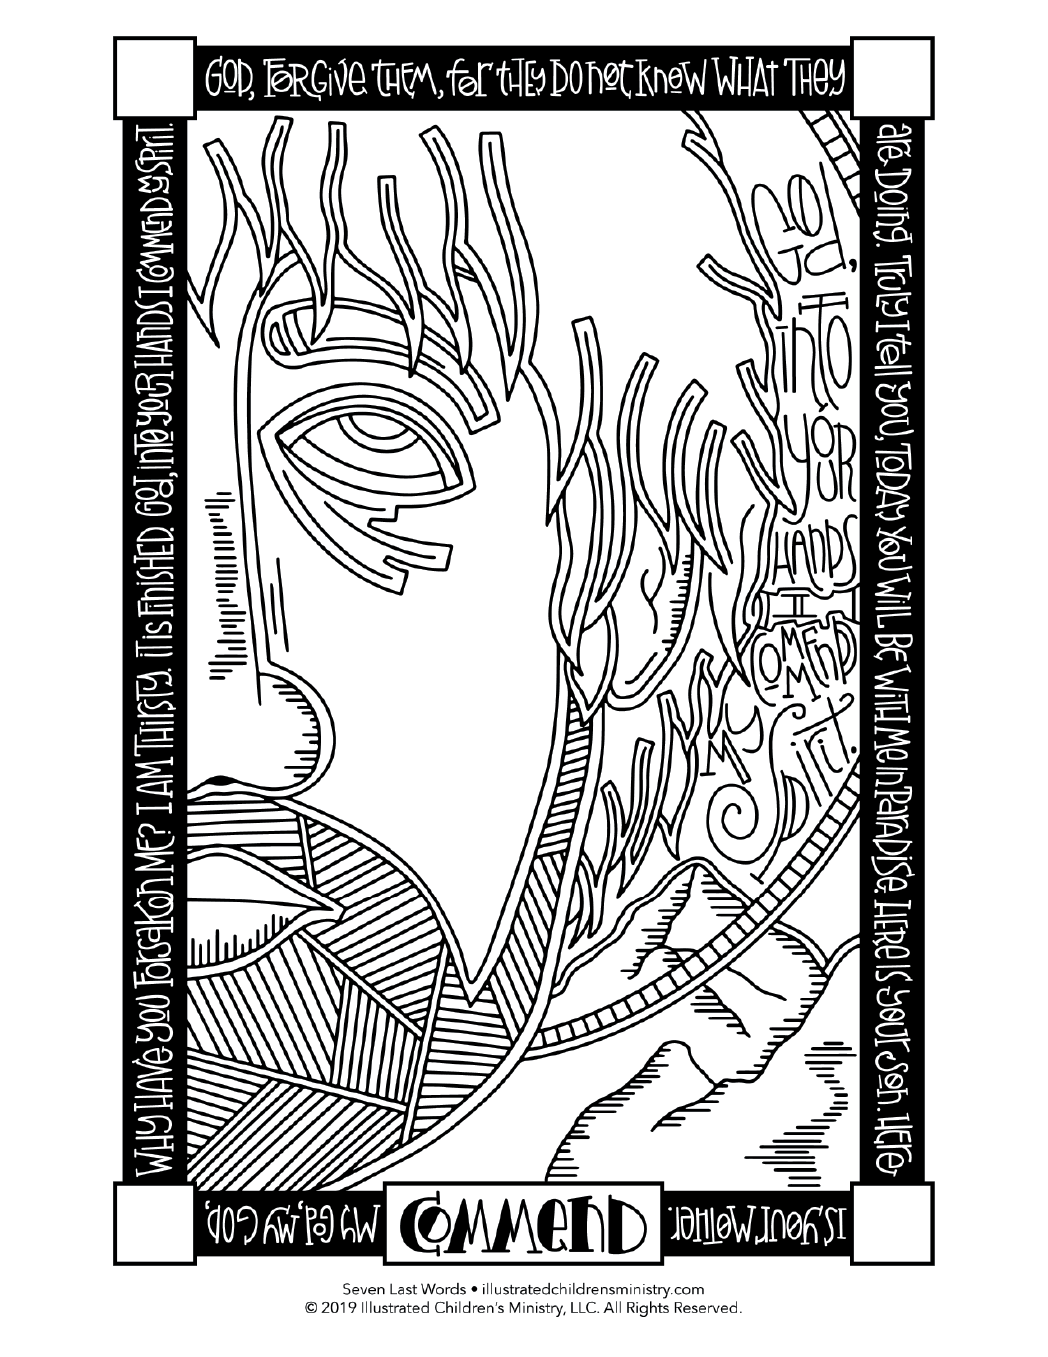 Seven Last Words coloring page - Commend